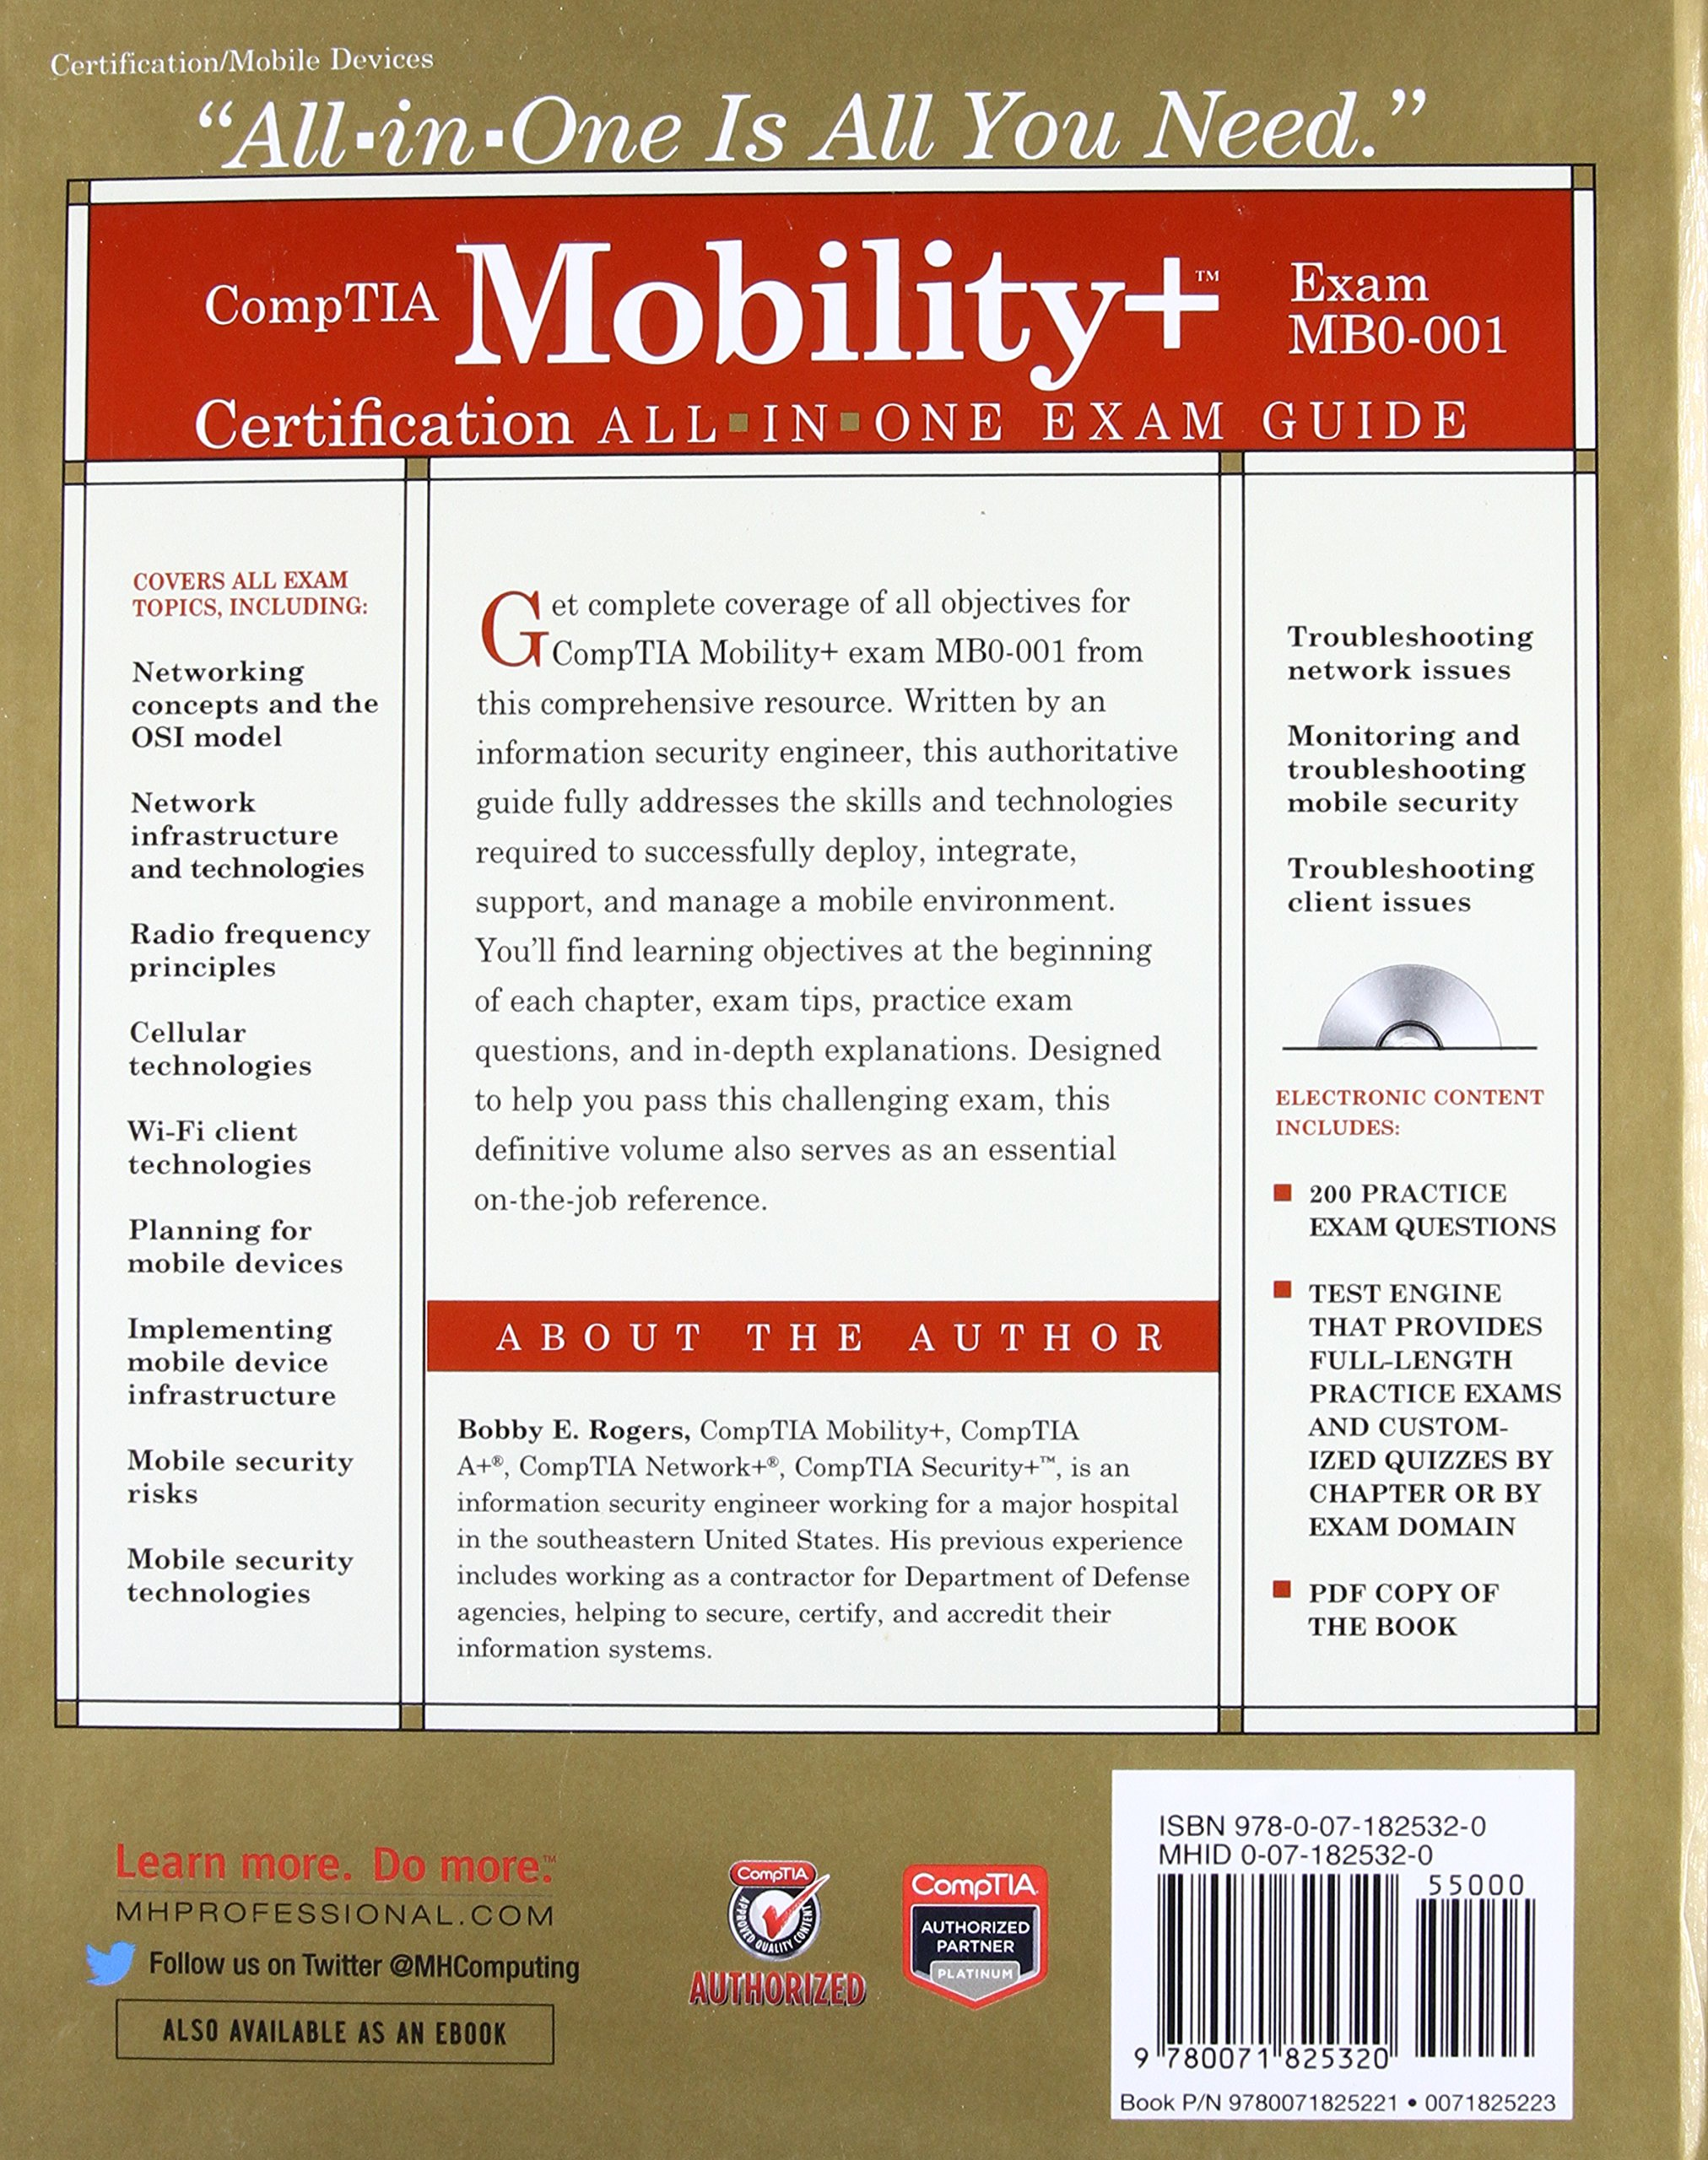 Buy comptia mobility certification all in one exam guide exam buy comptia mobility certification all in one exam guide exam mb0 001 book online at low prices in india comptia mobility certification all in one xflitez Choice Image